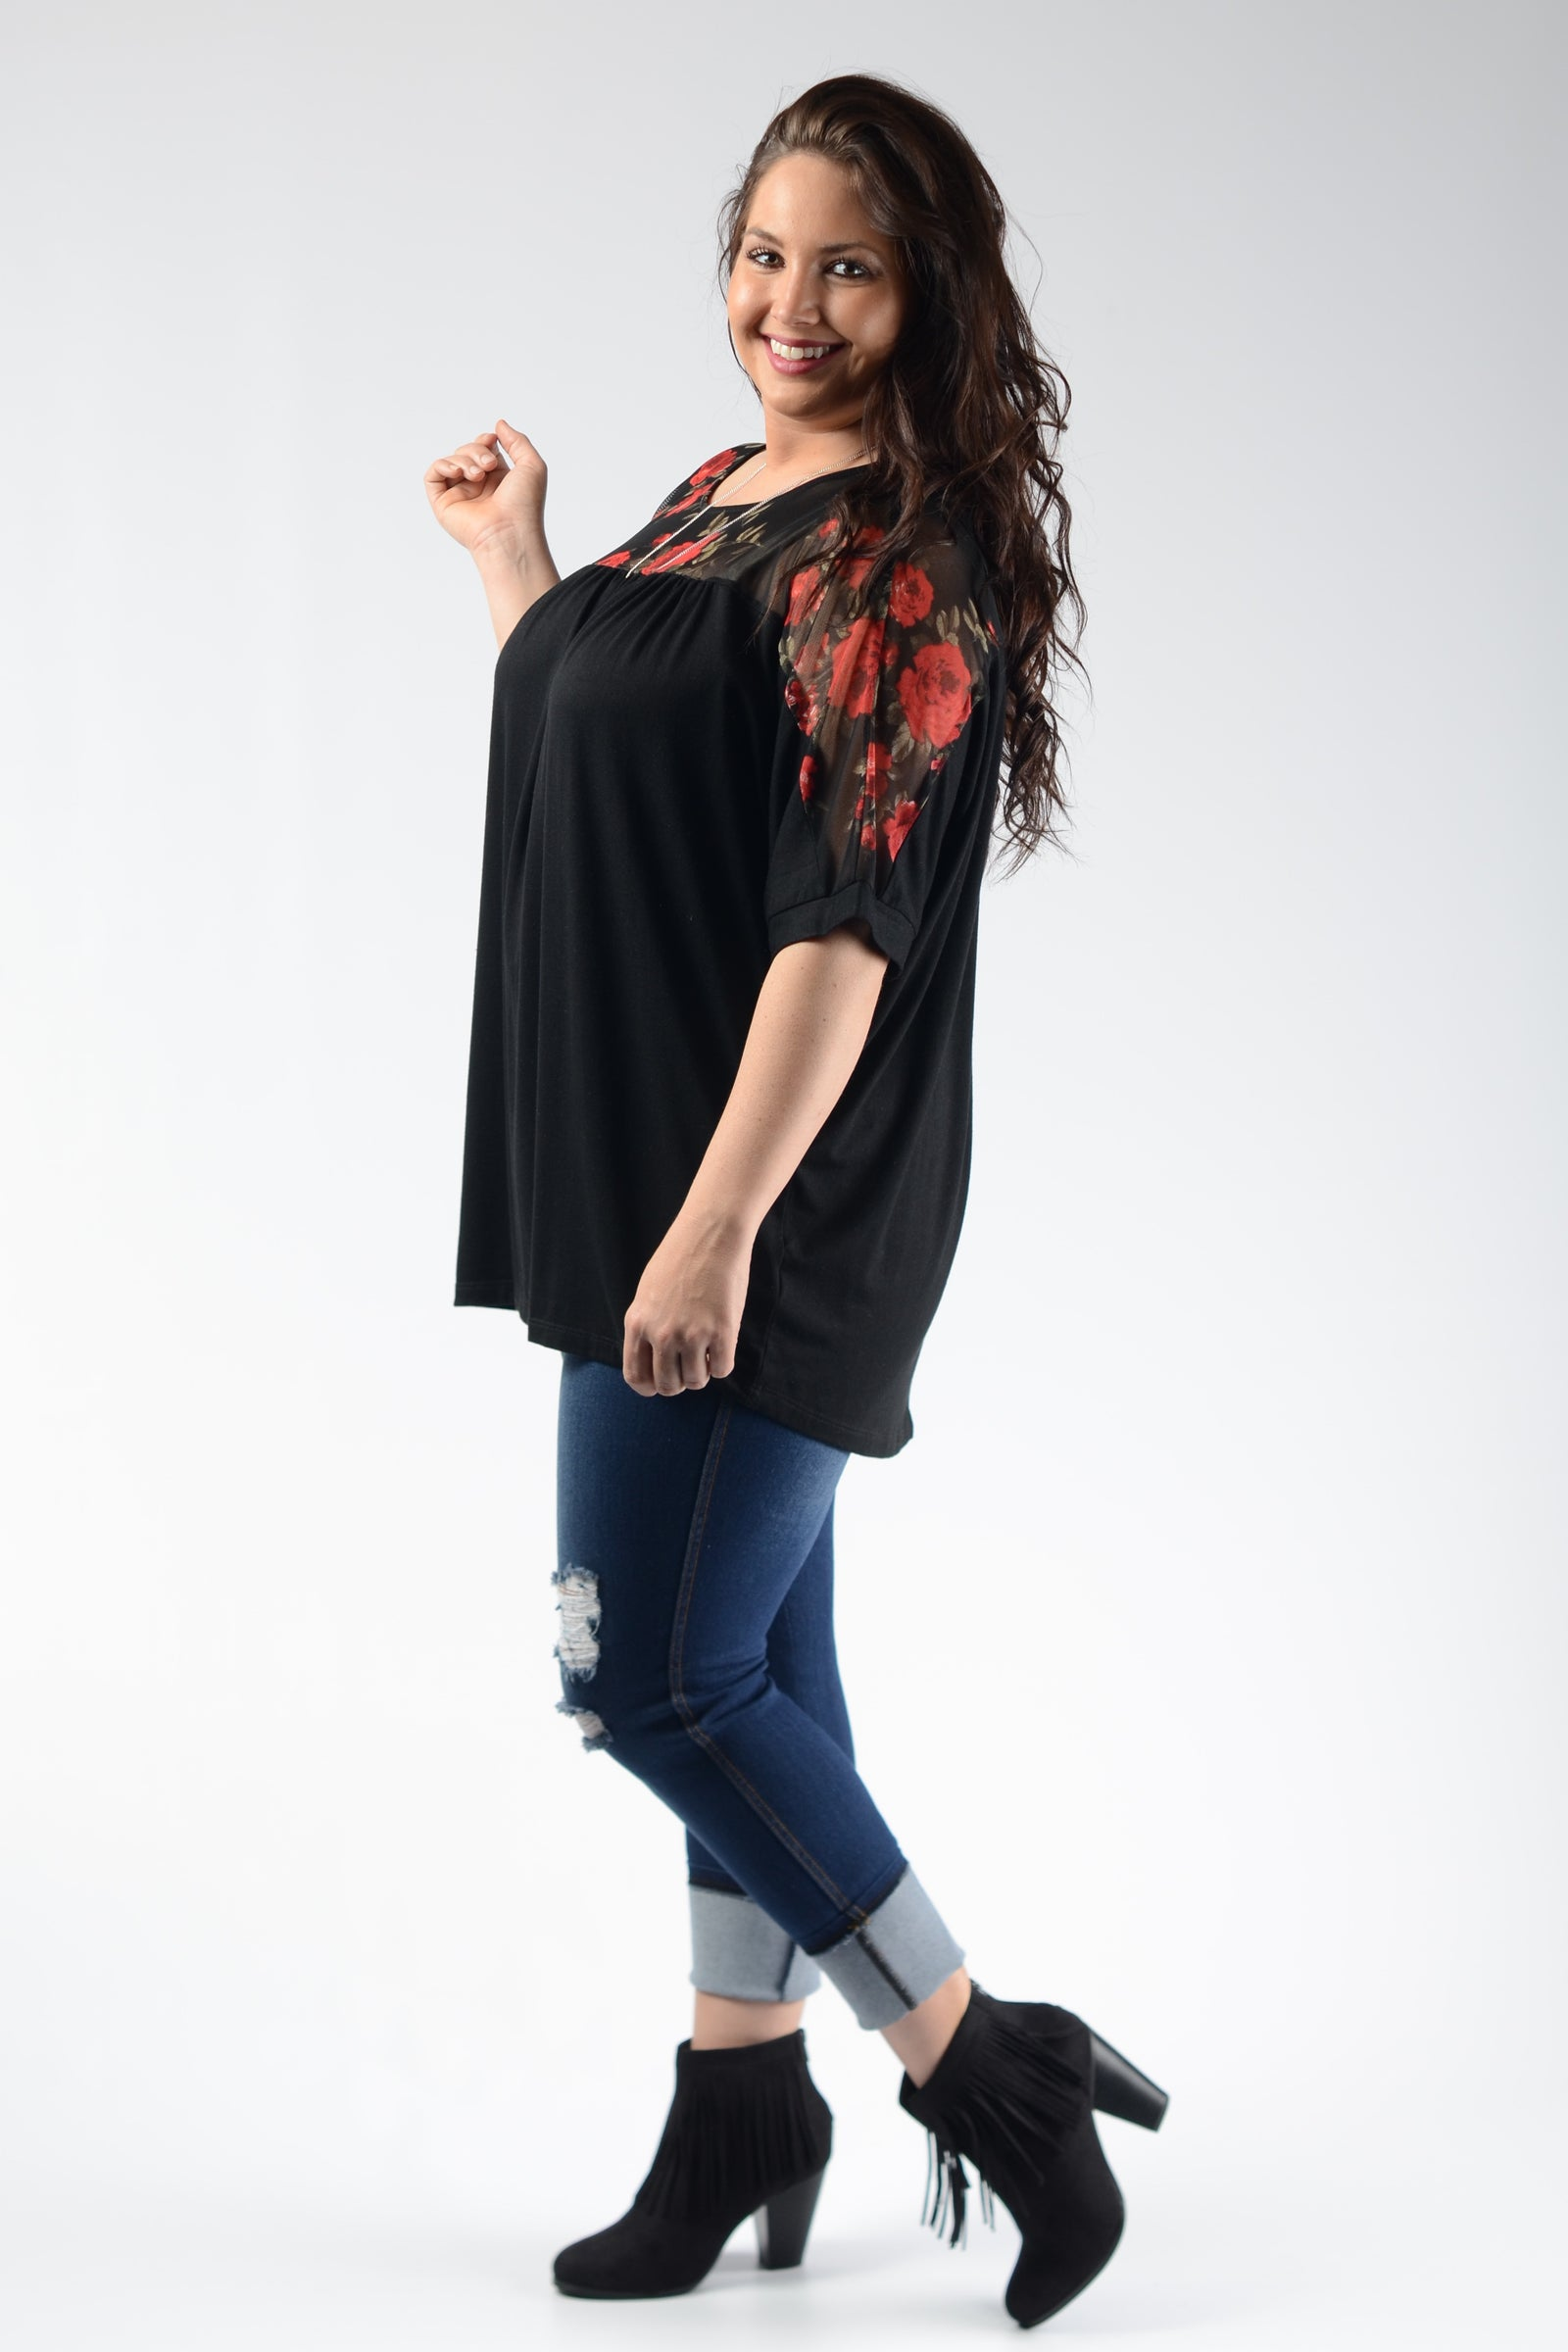 Black & Floral Shoulder Top - www.mycurvystore.com - Curvy Boutique - Plus Size